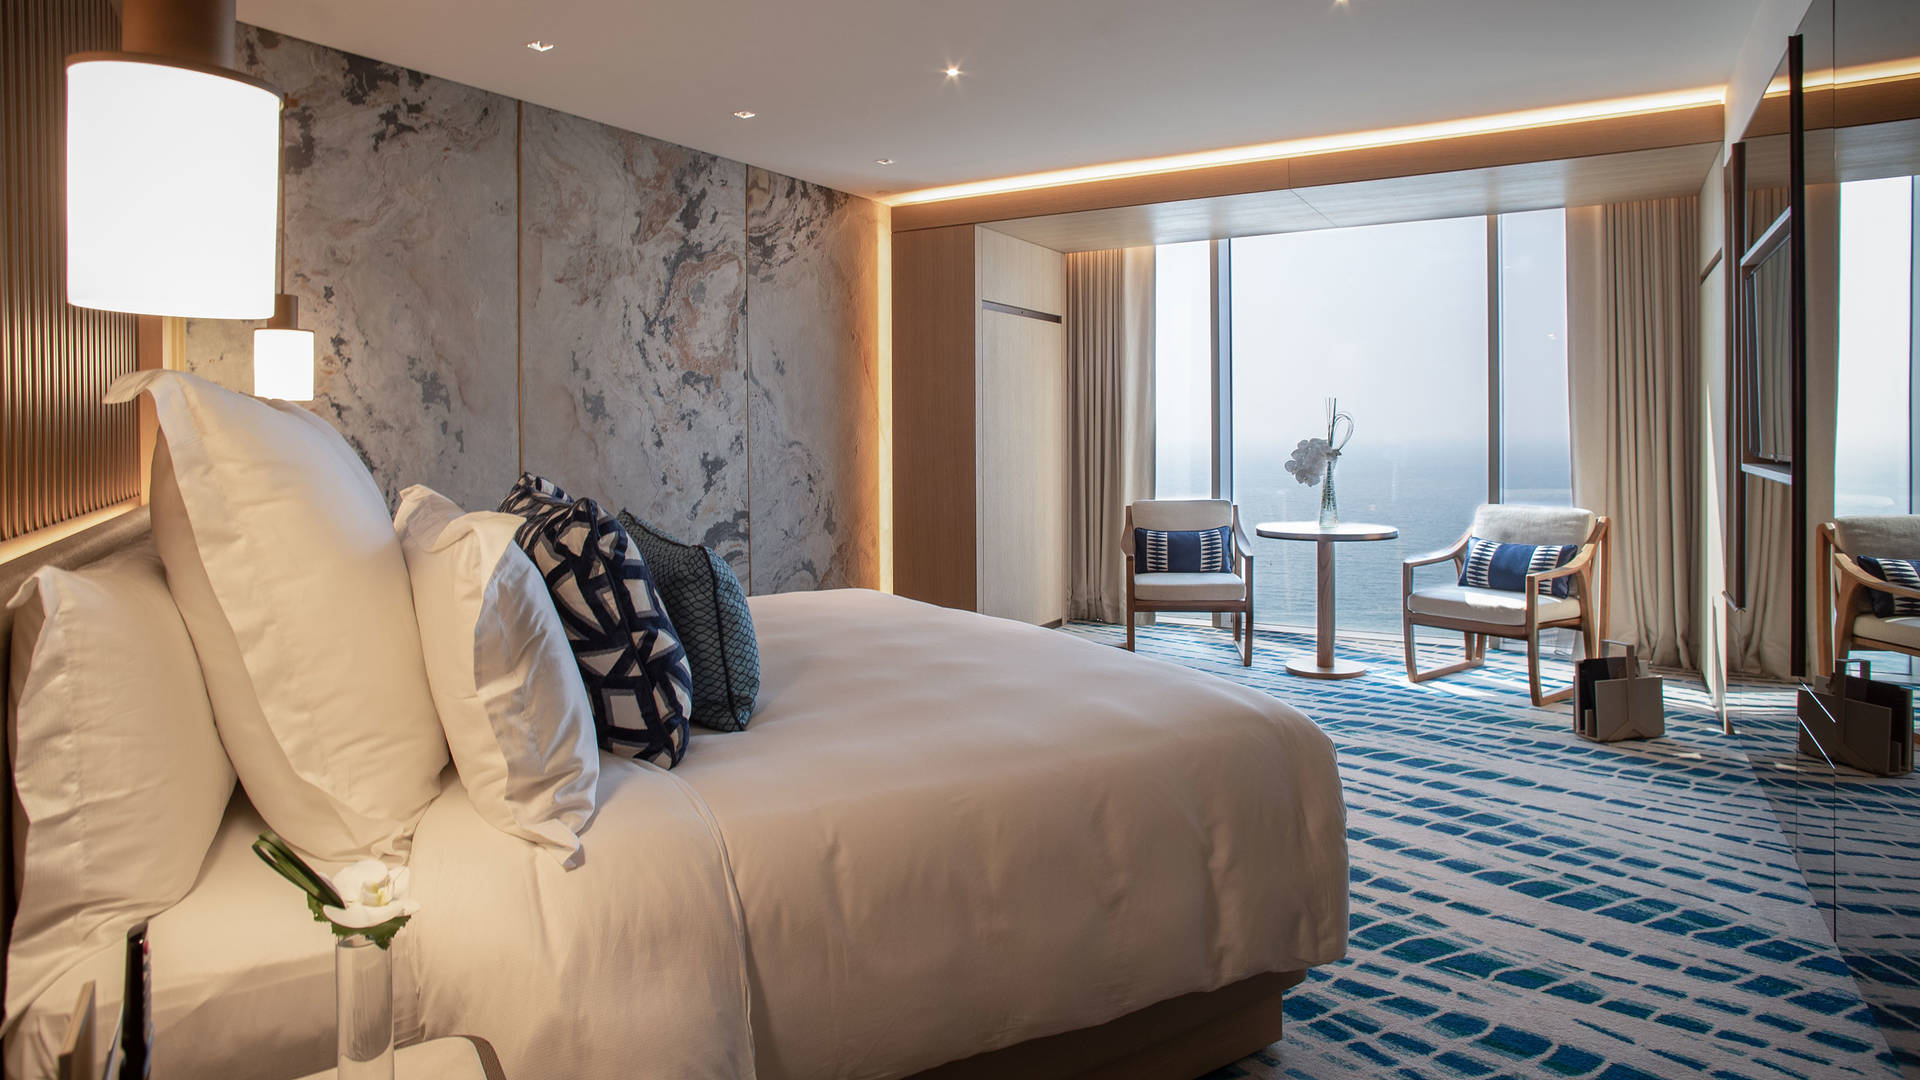 View of the Ocean Deluxe Room at Jumeirah Beach Hotel